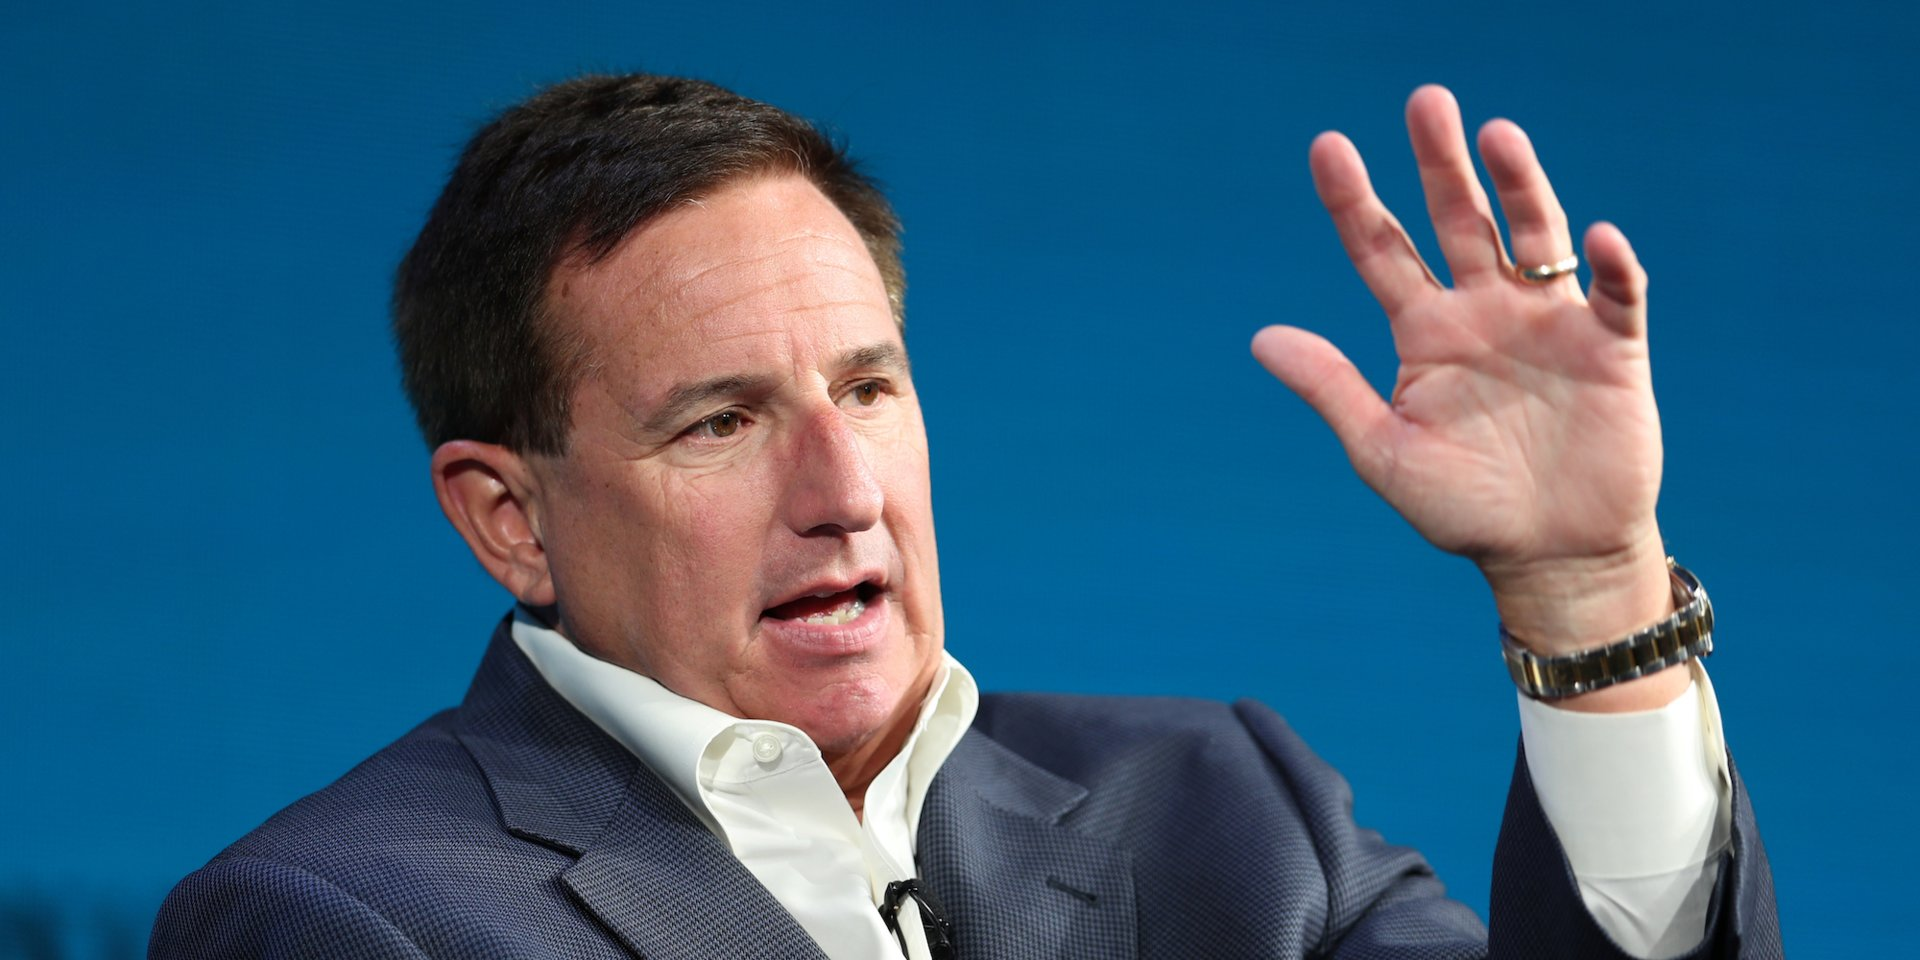 Analysts say Oracle CEO Mark Hurd's medical leave is a 'huge blow' at a crucial moment: 'Oracle needs fewer distractions, and this is a major one' (ORCL)